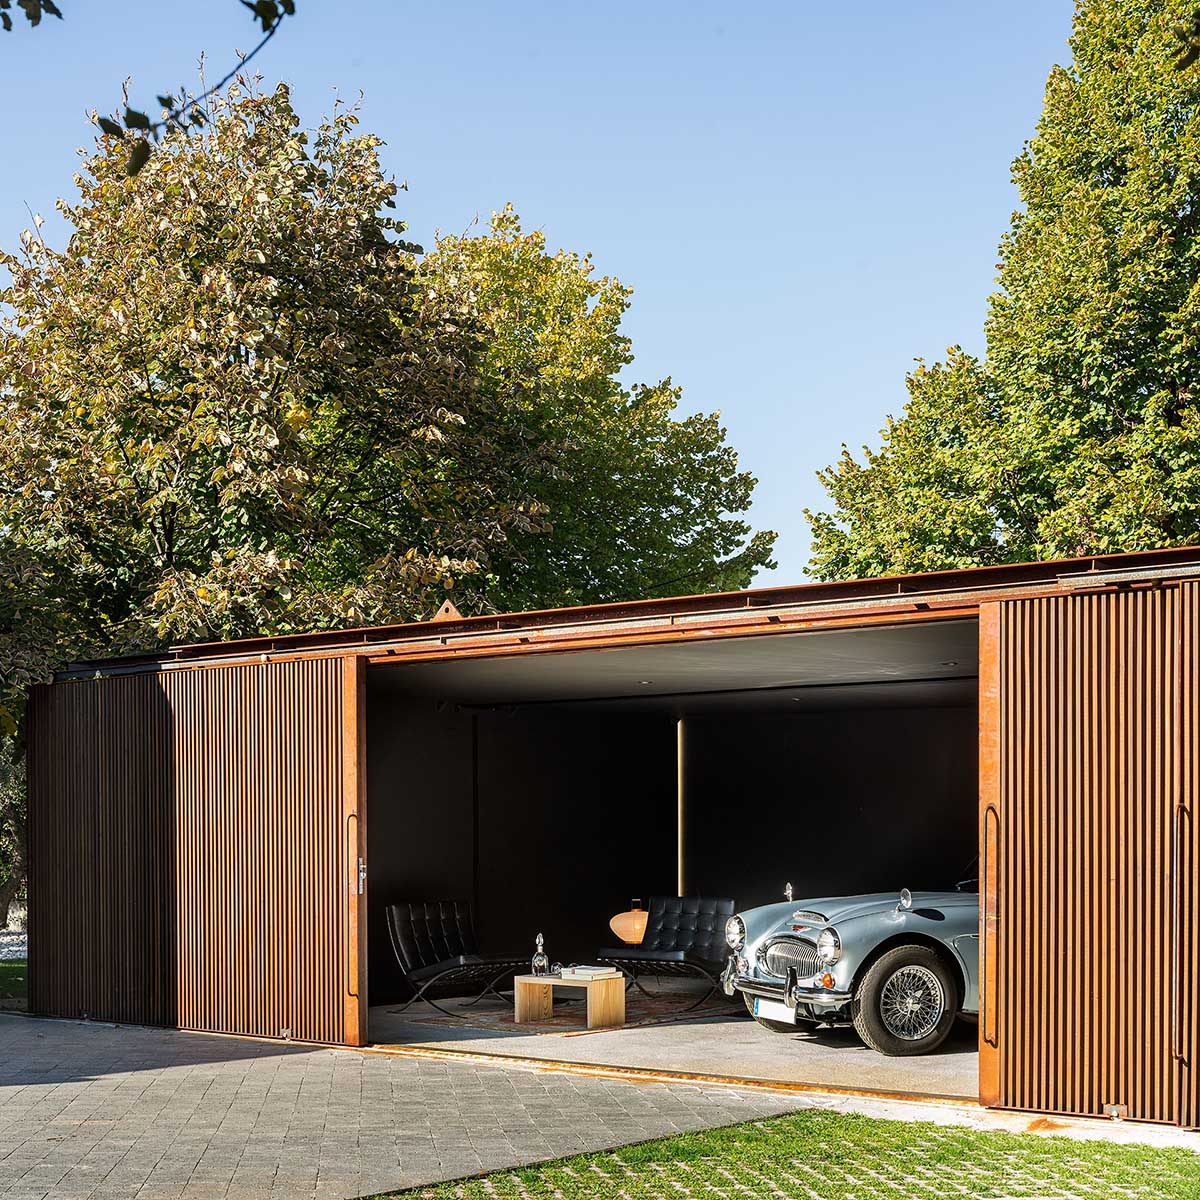 Living with garage: delaVegaCanolasso unites living space and garage within a corten steel stage